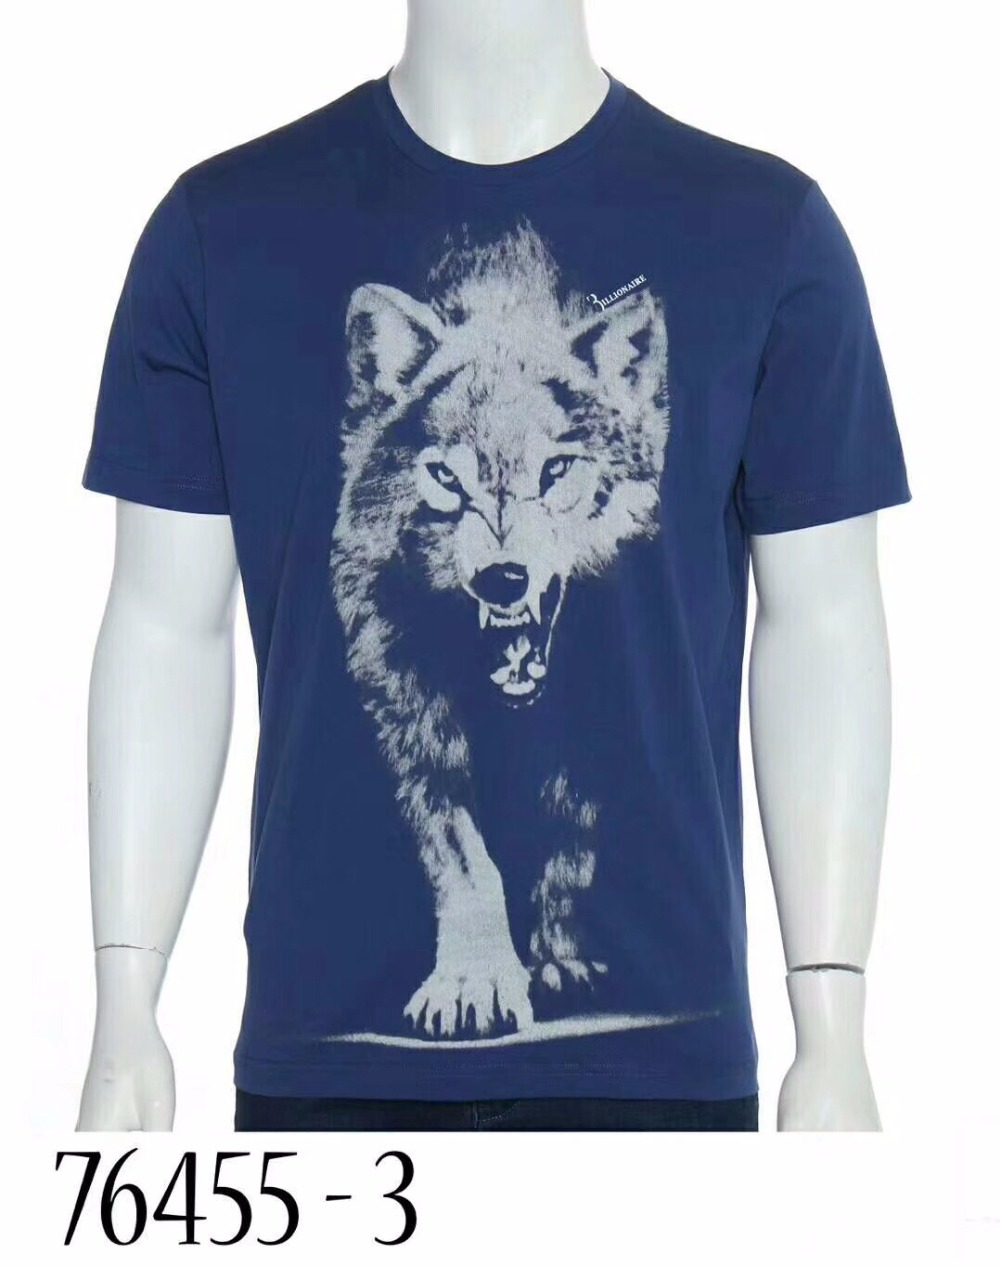 018638bce Billionaire italian couture men s clothing t-shirt 2018 summer short-sleeve  straight casual comfort good quality free shipping. IMG 2983 IMG 2984 ...